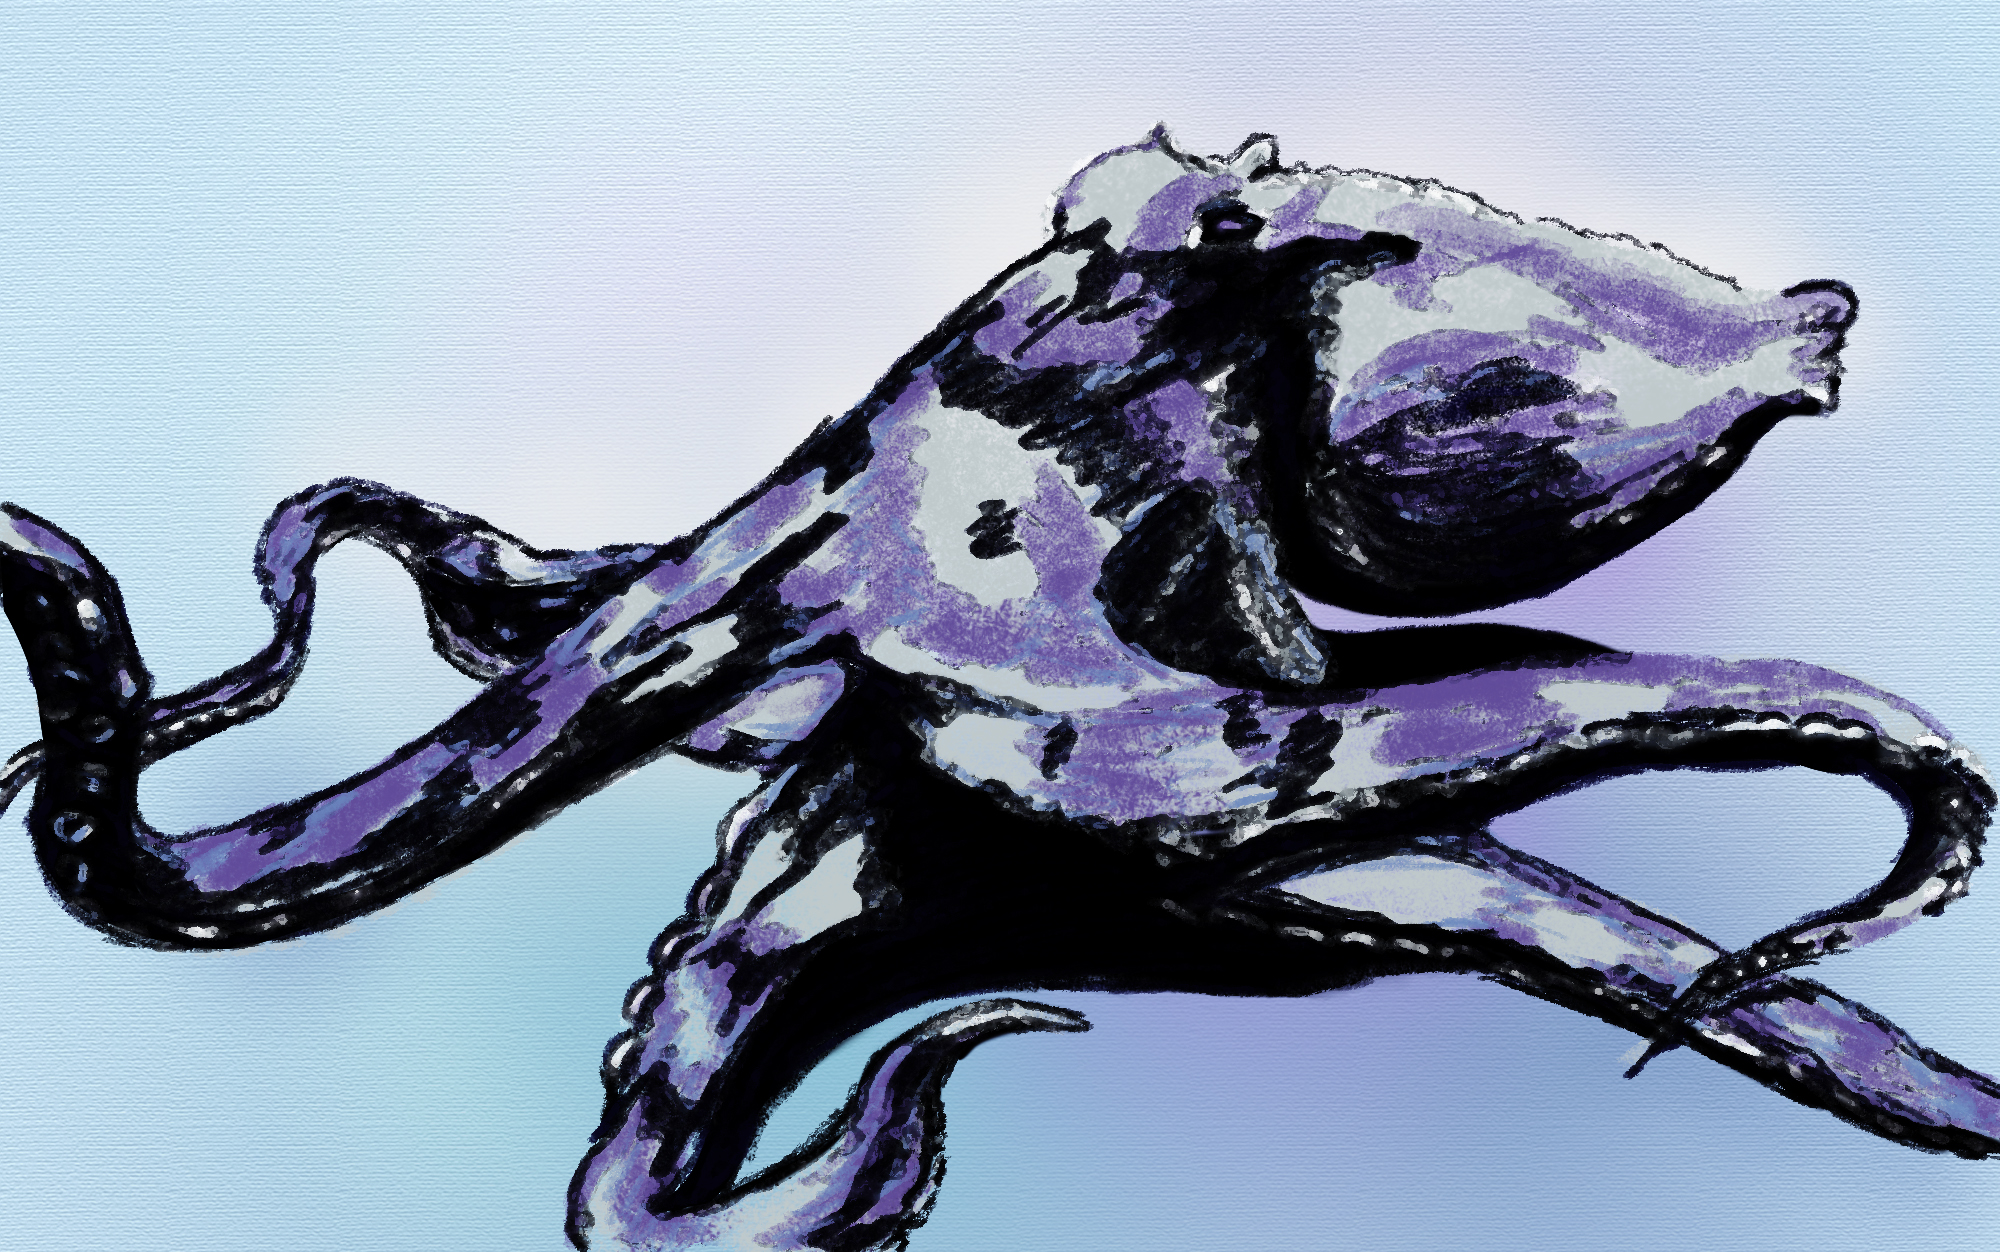 Digital Painting of an Octopus